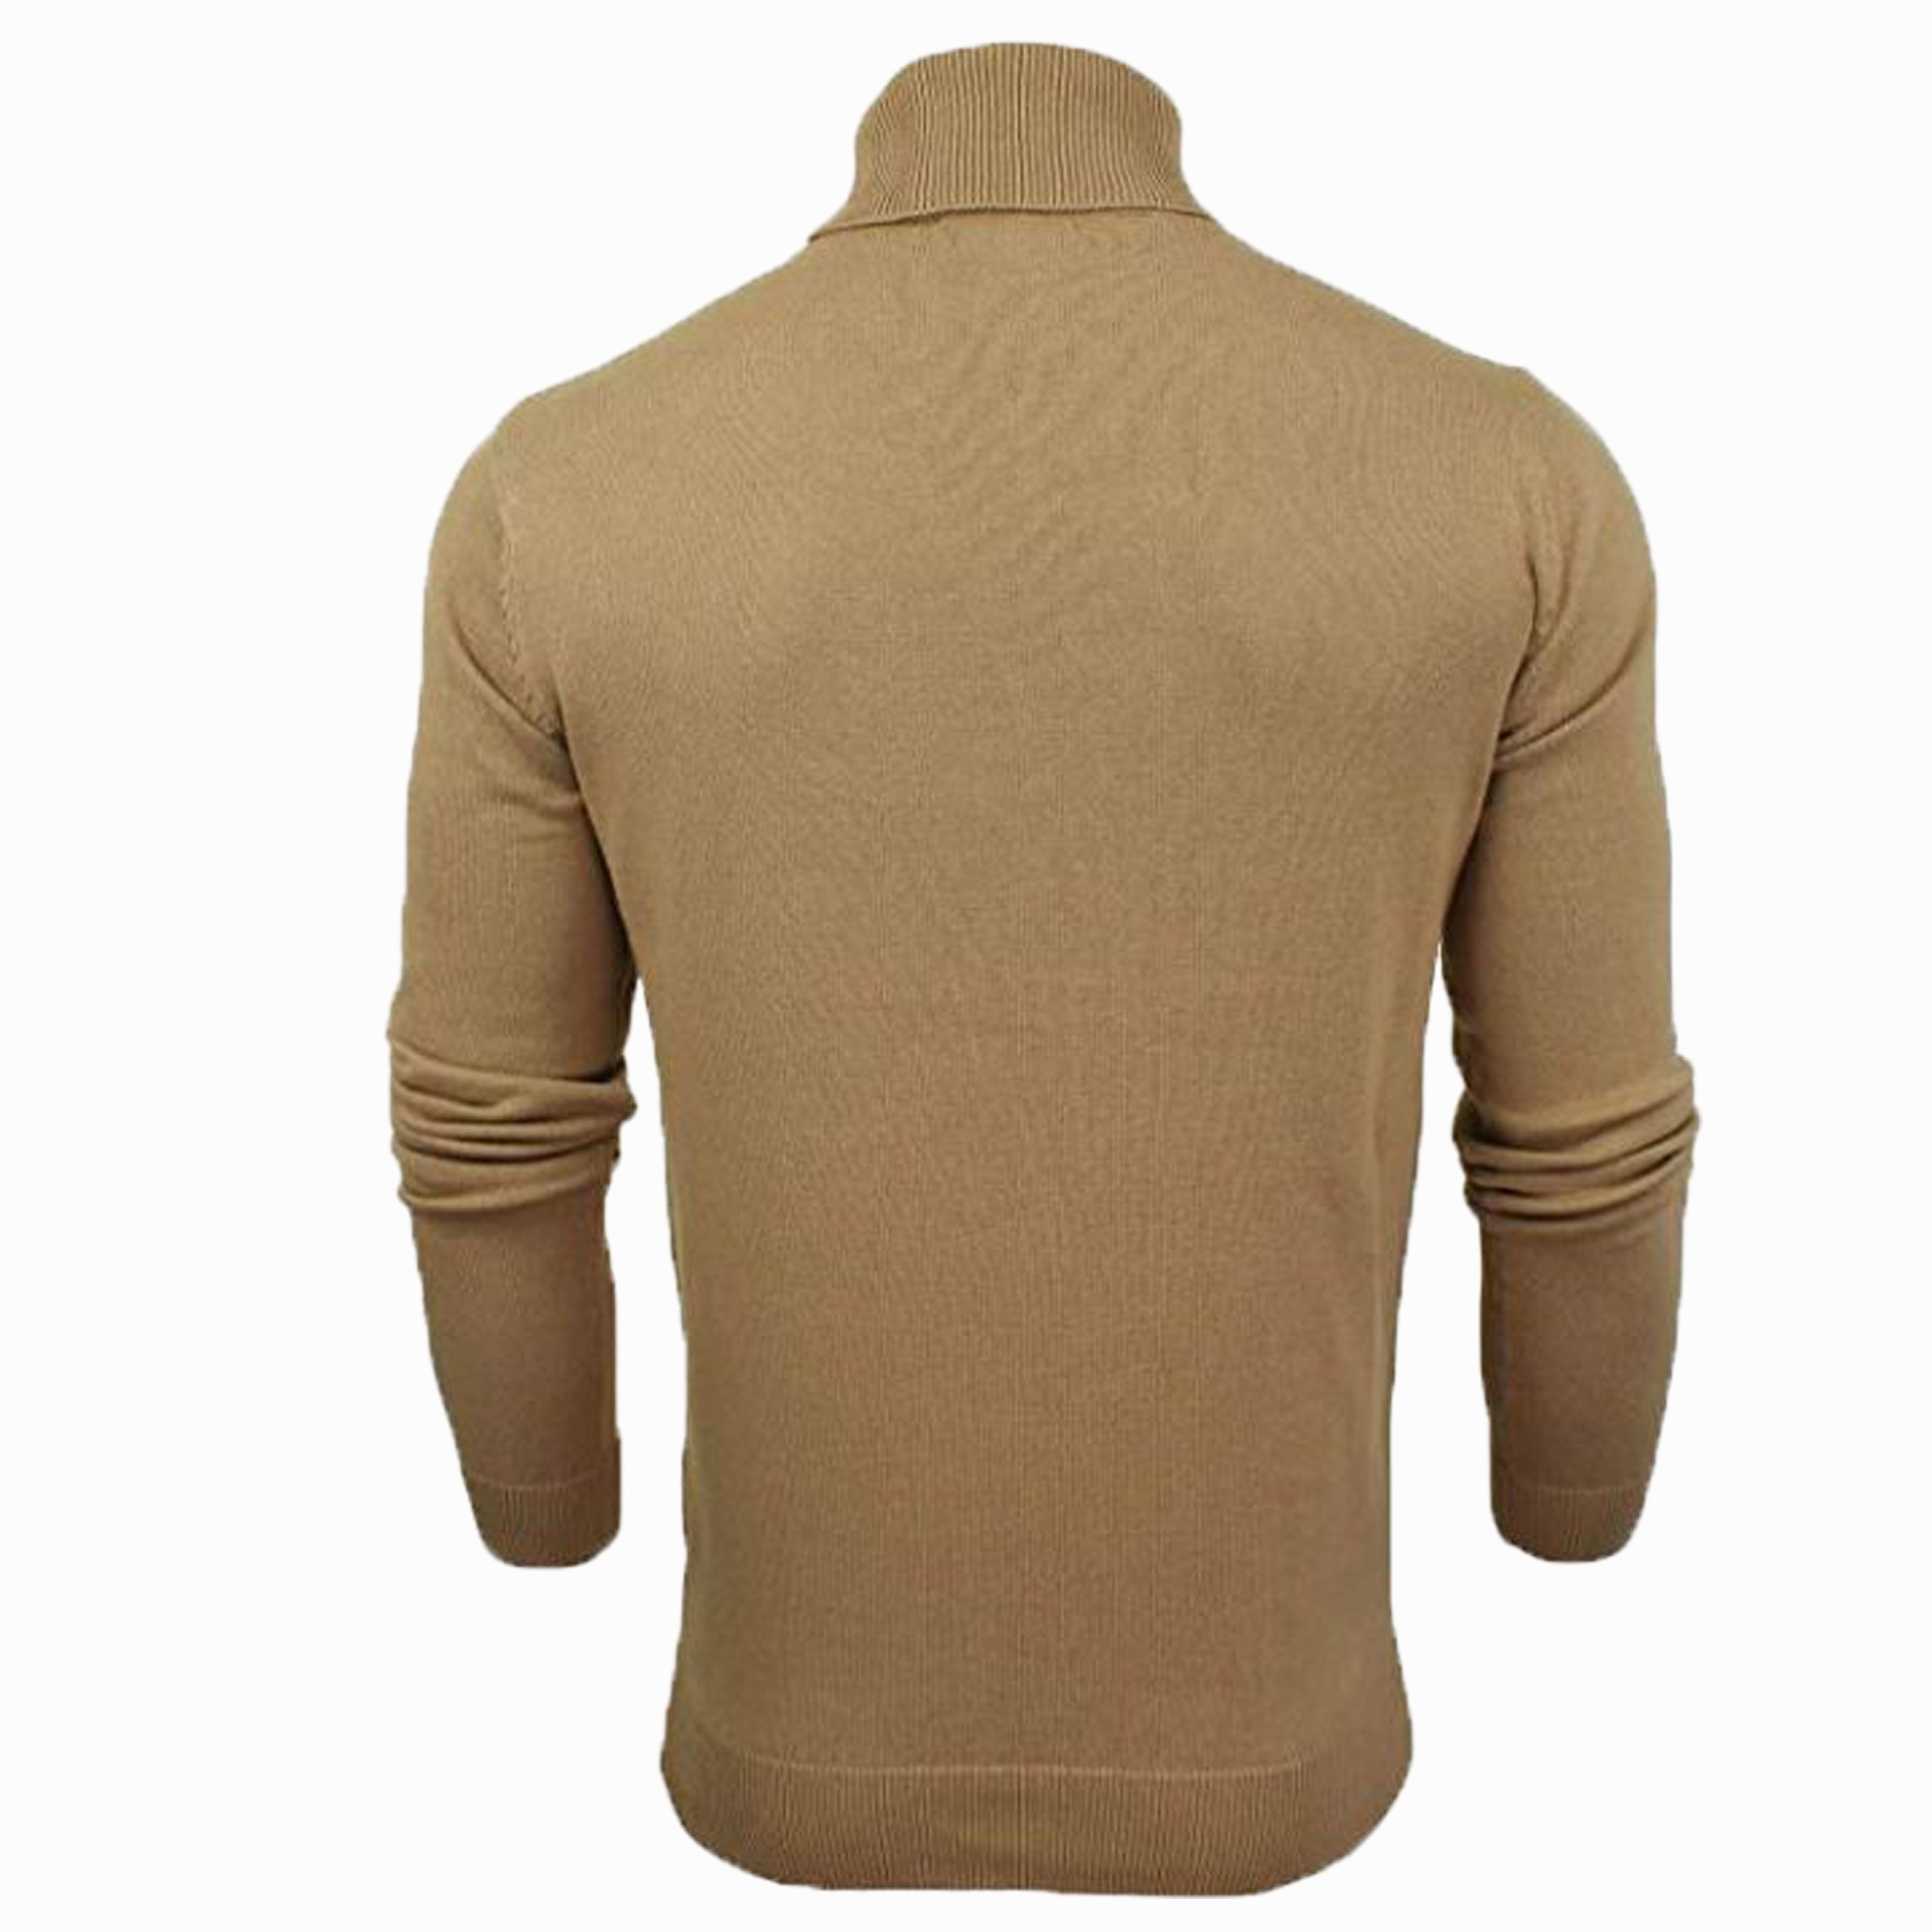 Mens-Brave-Soul-HUME-Roll-Neck-Polo-Light-Cotton-Knitwear-Jumper-Sweater-Winter thumbnail 27